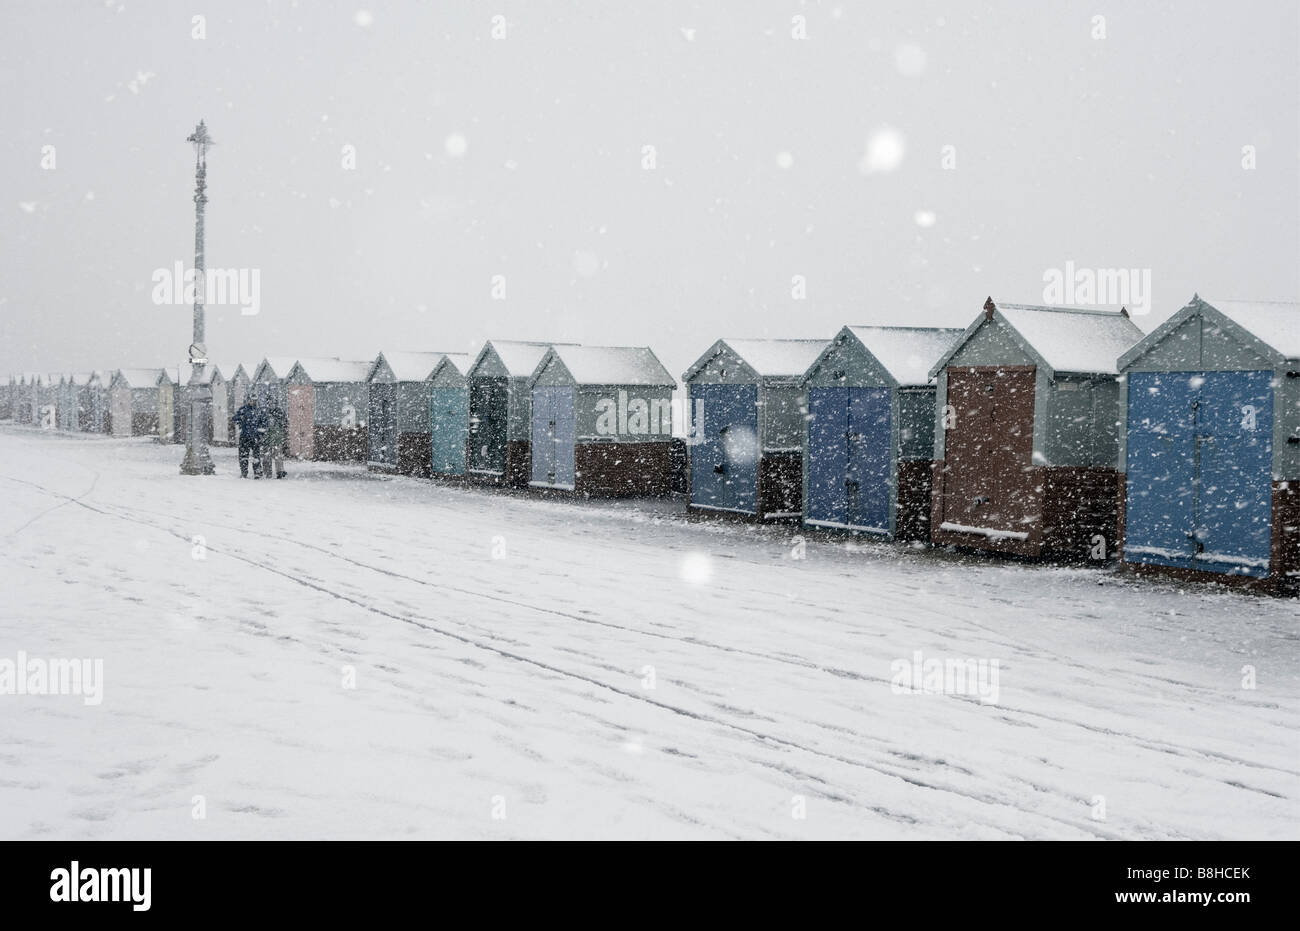 Snow falling on beach huts in Hove, England. - Stock Image